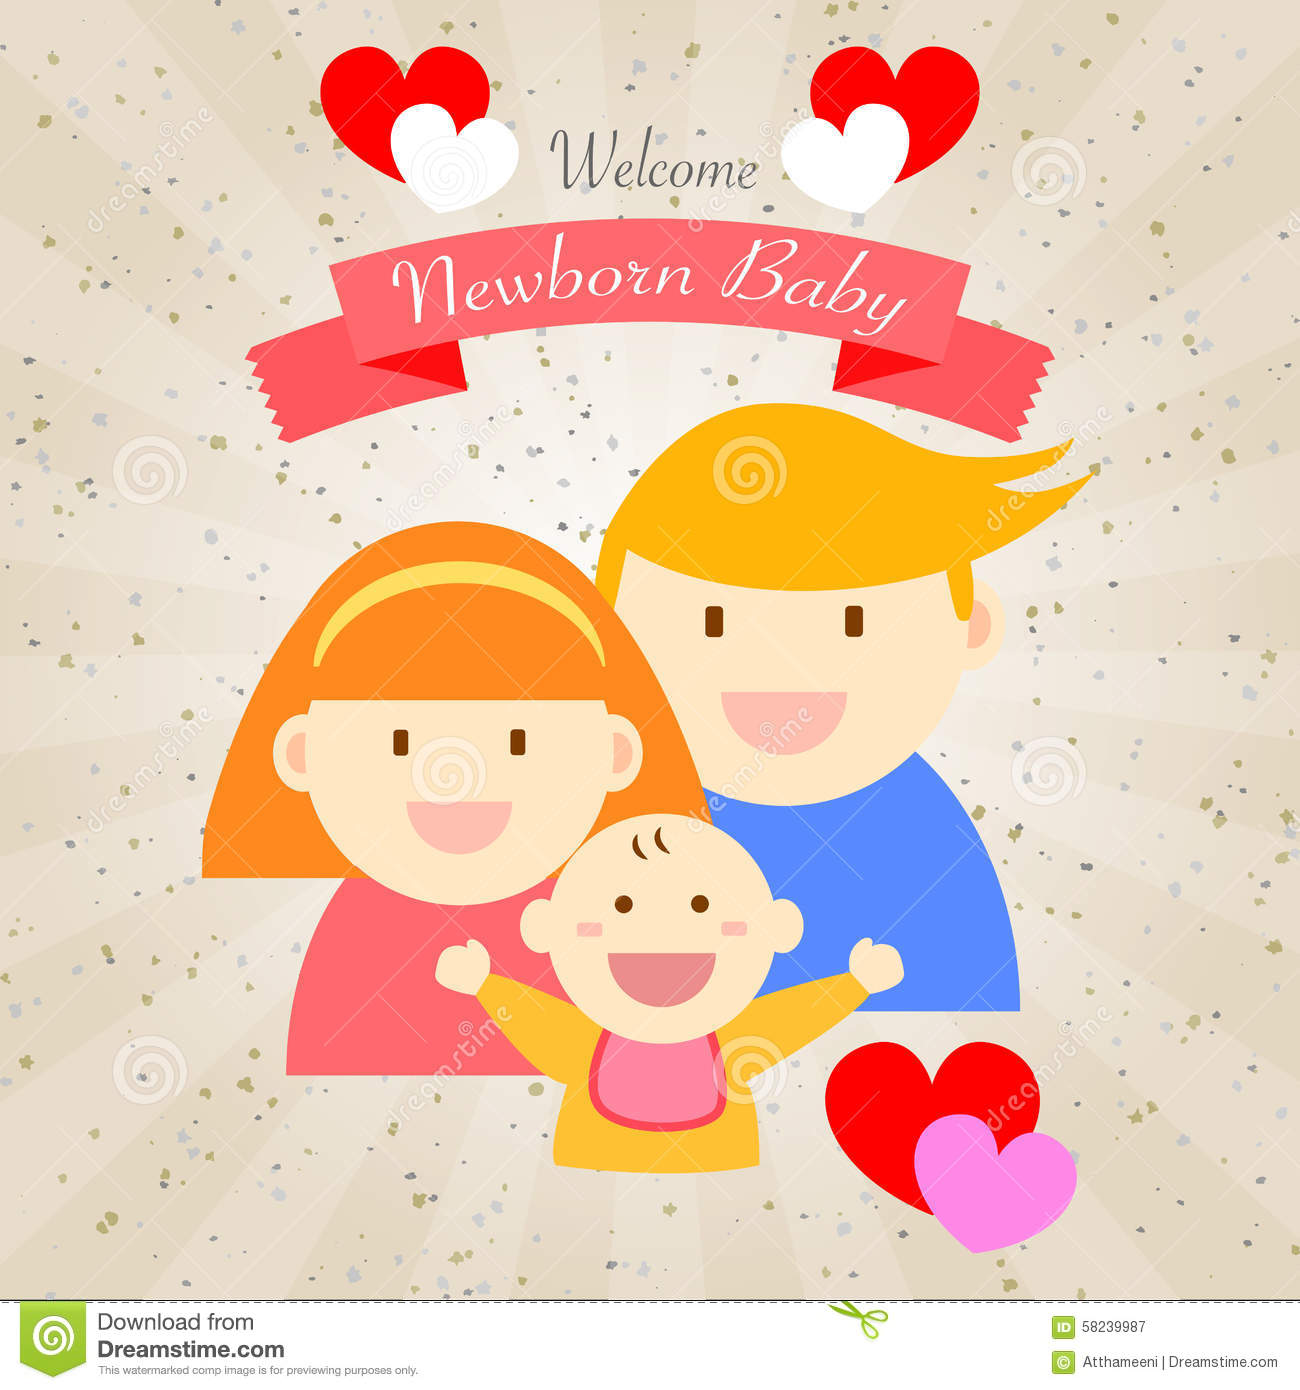 Top 5 Newborn Baby Invitation 2018 FotoShop